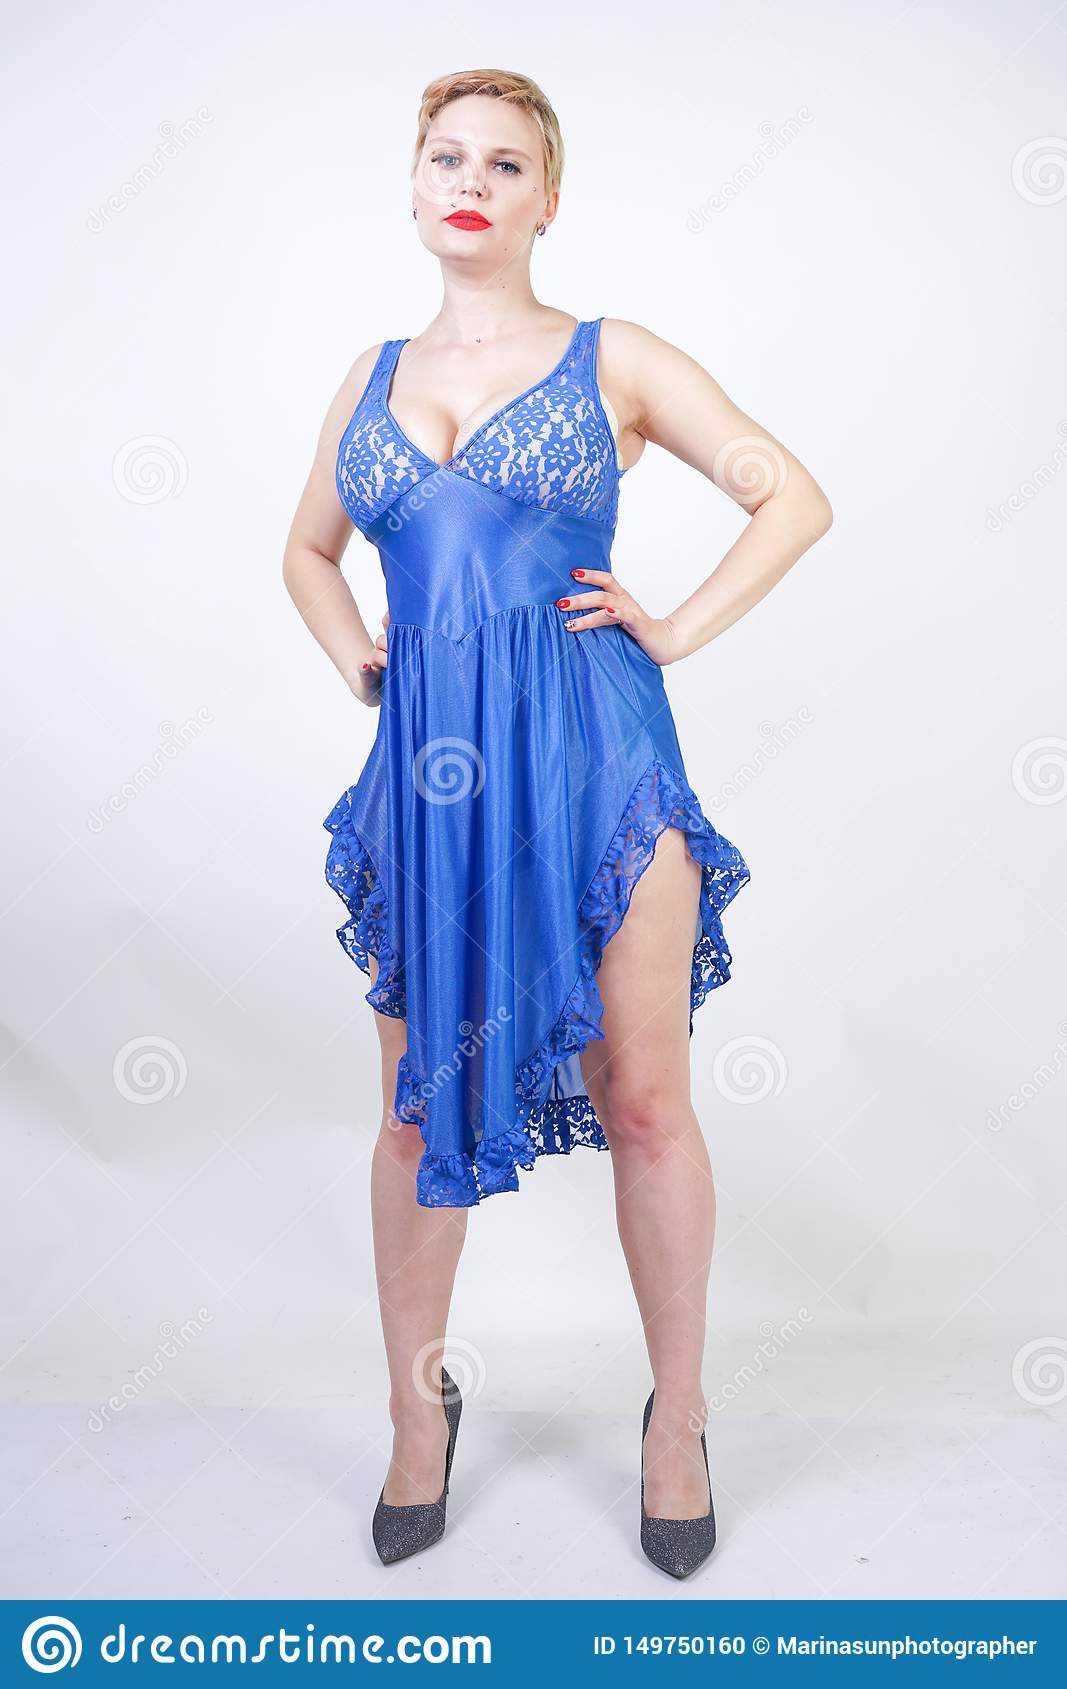 Cute caucasian girl with short hair and curvy body in blue lace nightgown on white background in Studio standing alone